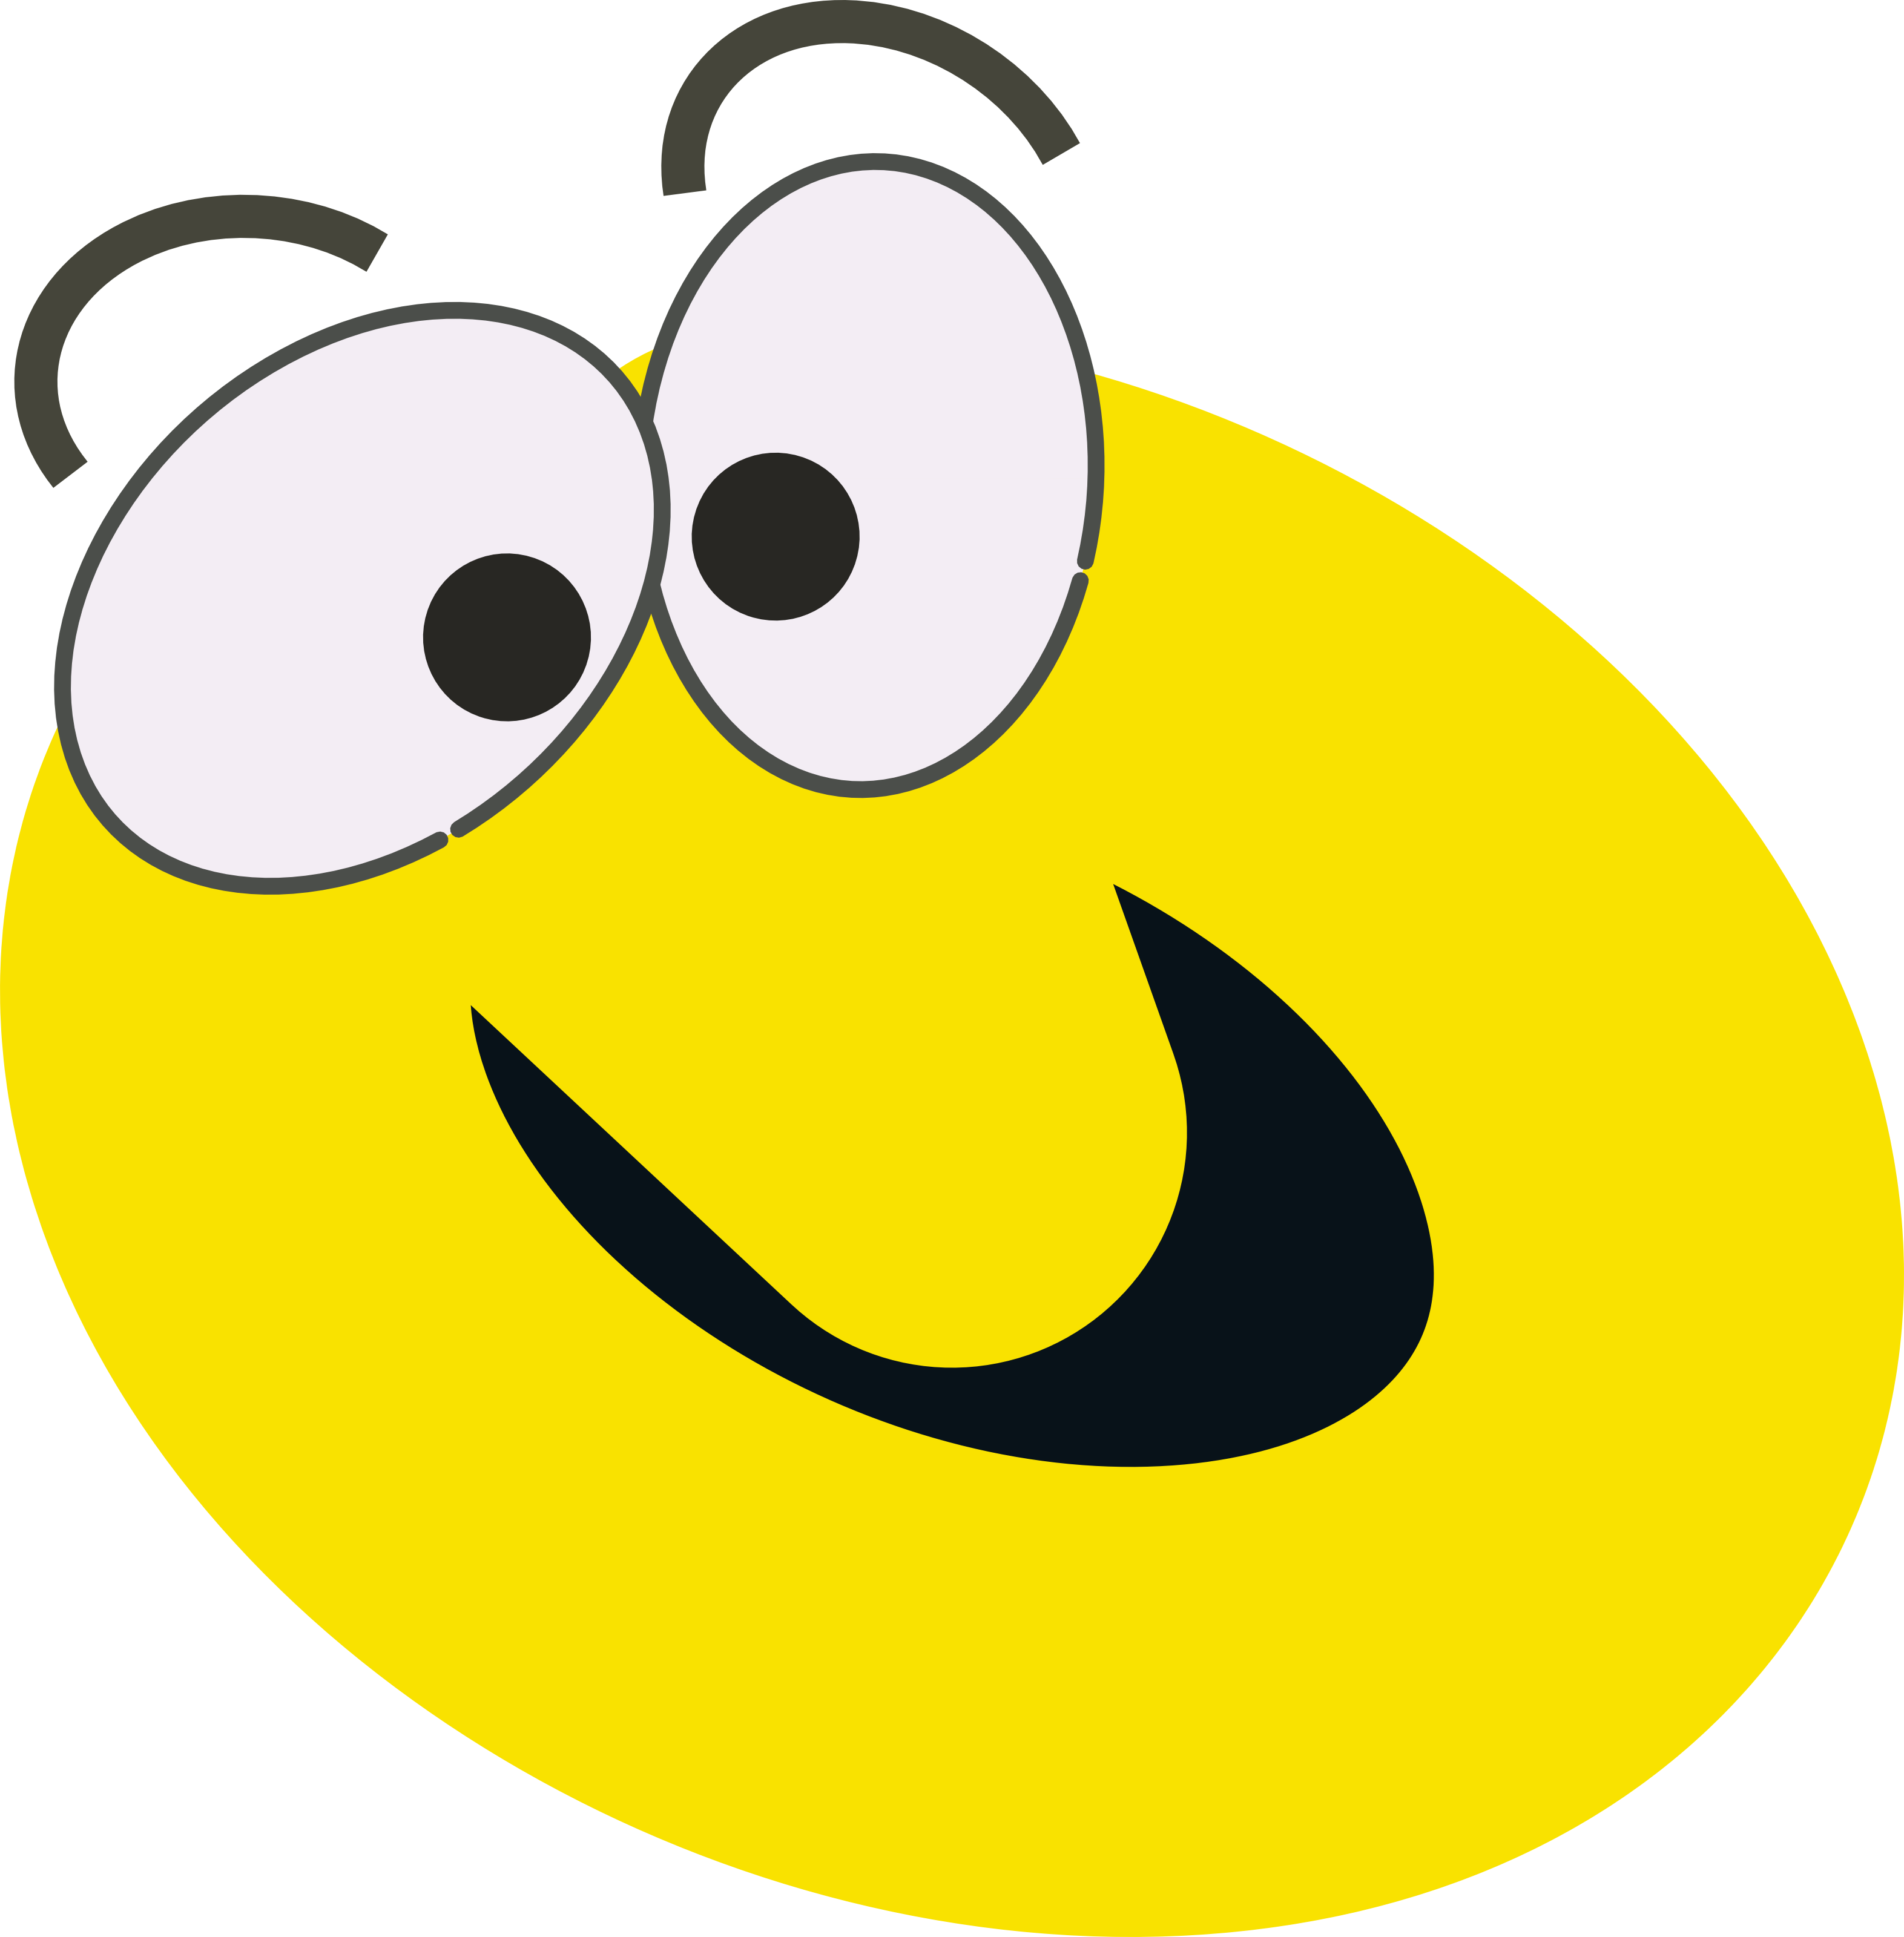 Smiley face clip art animated .